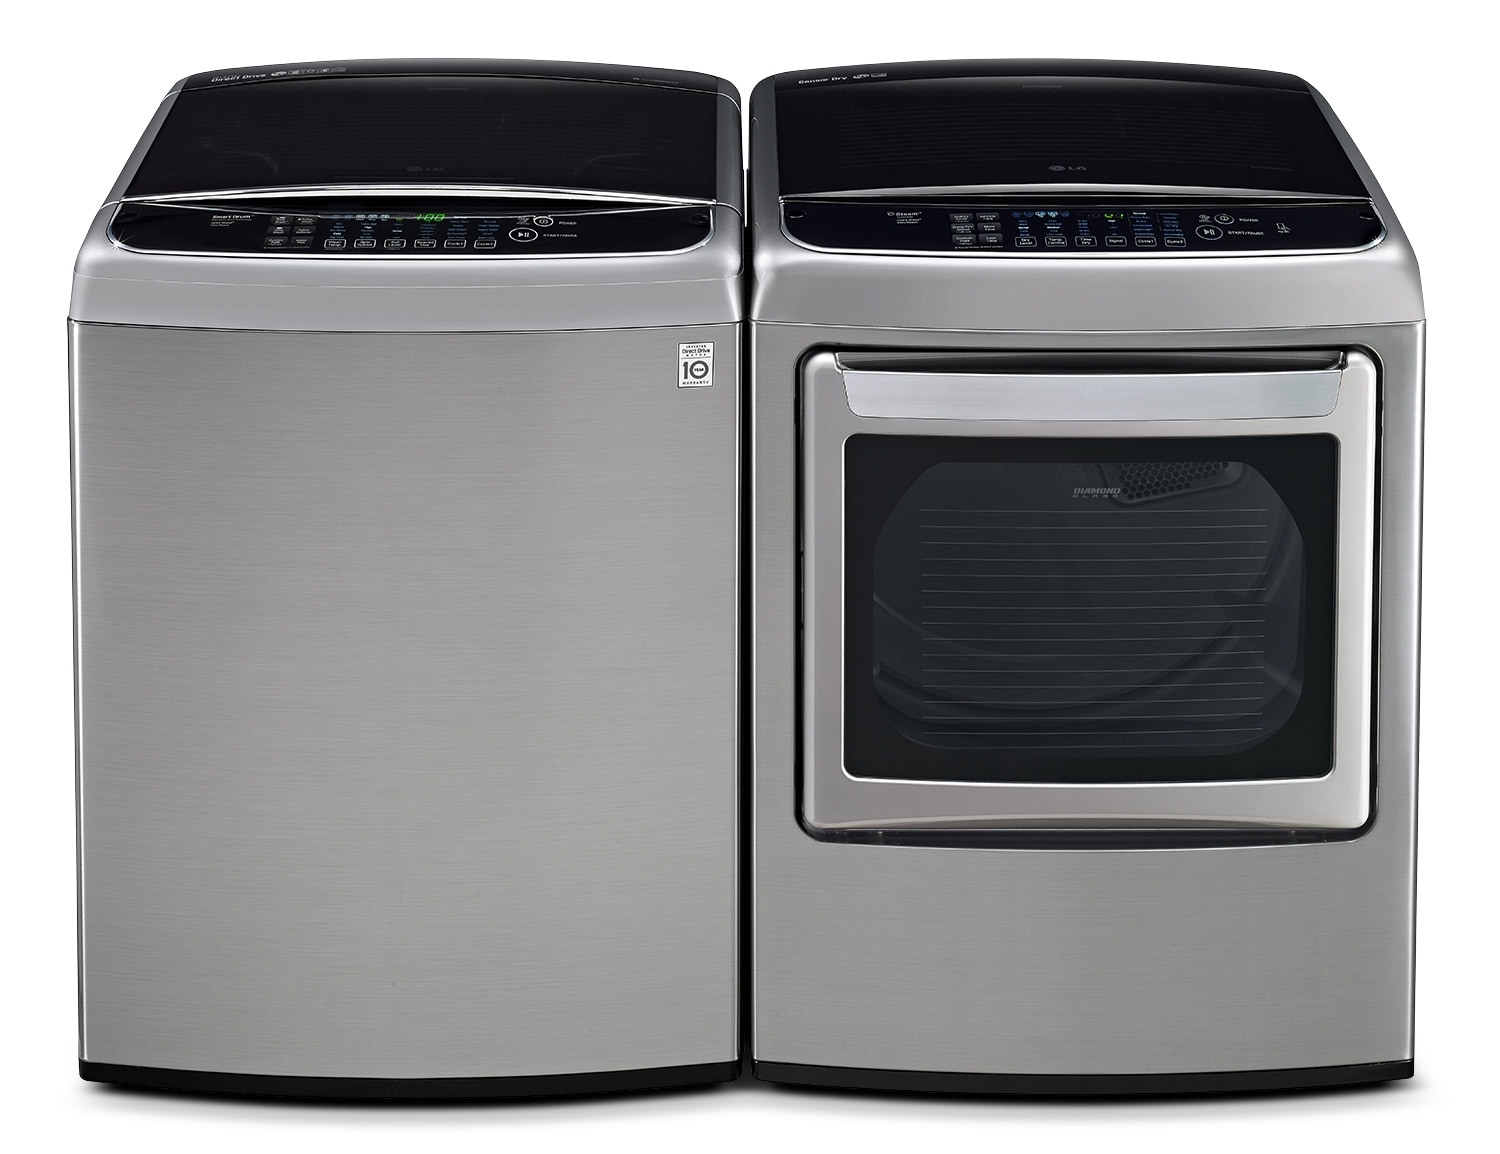 Washers and Dryers - LG 5.8 Cu. Ft. Top-Load Washer and 7.3 Cu. Ft. Electric Dryer - Graphite Steel